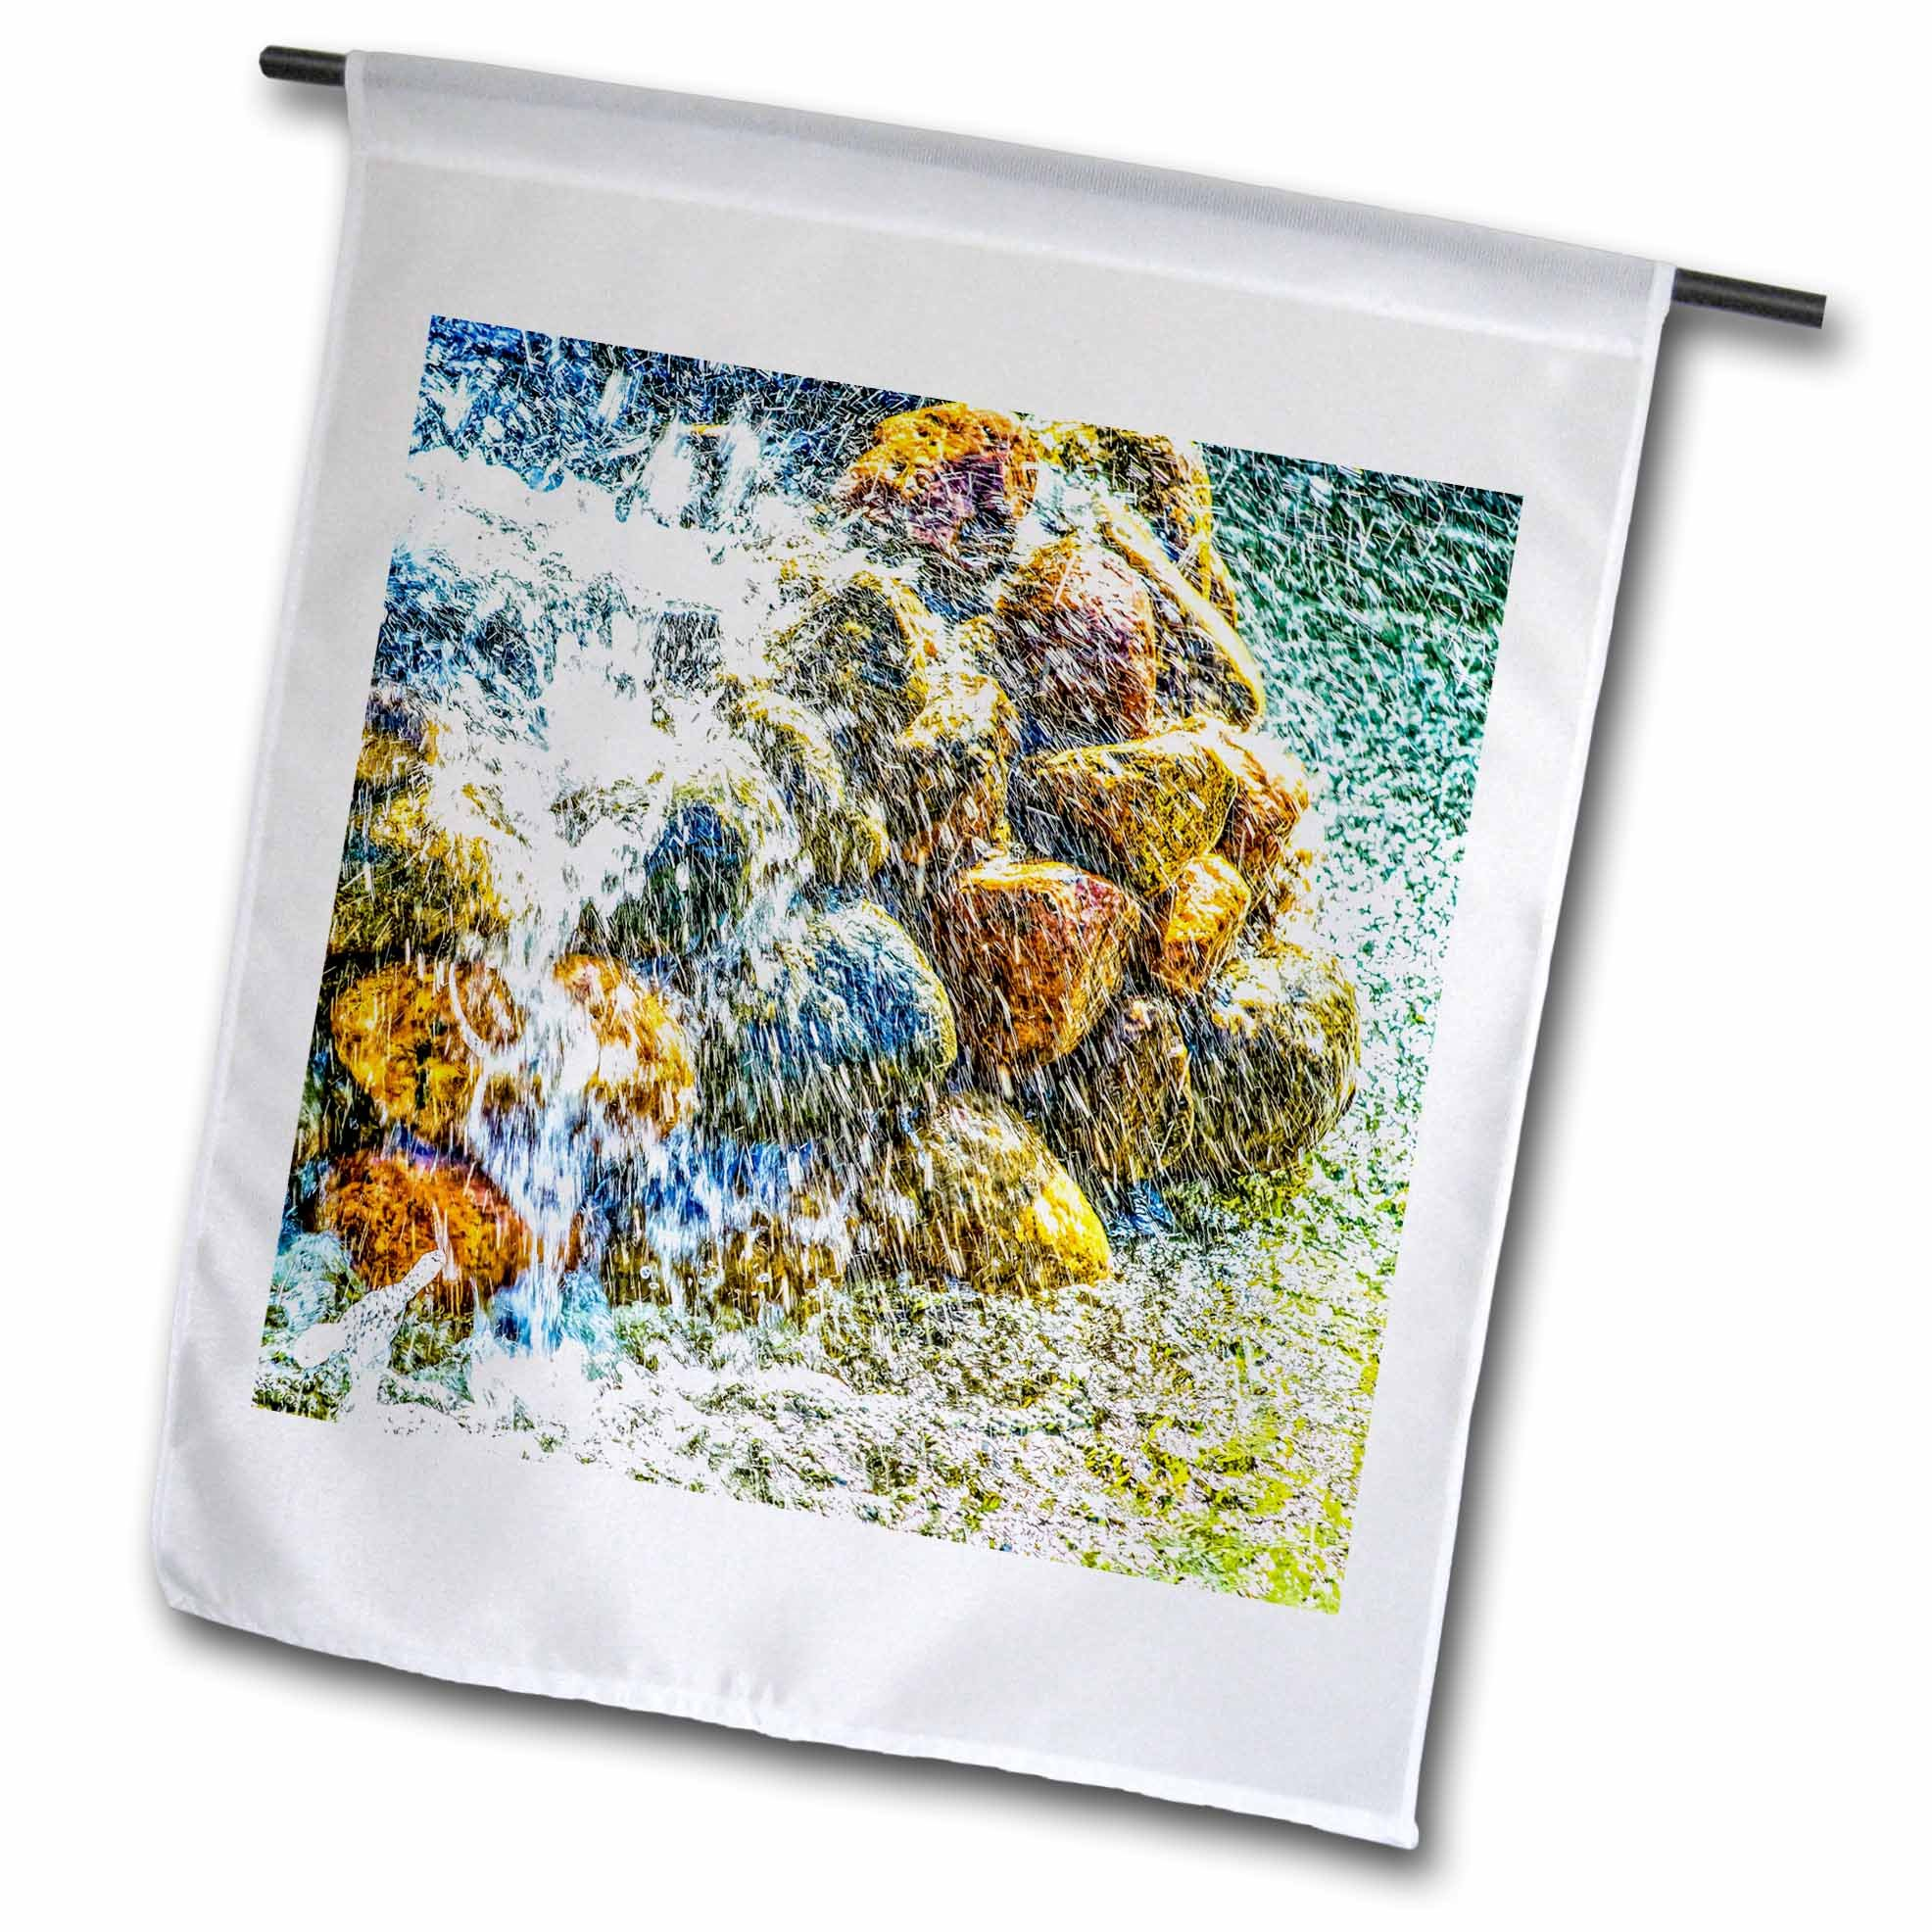 3dRose Alexis Photography - Objects - Fierce water sprays and jets over the stone pile. Fountain - 18 x 27 inch Garden Flag (fl_270876_2)